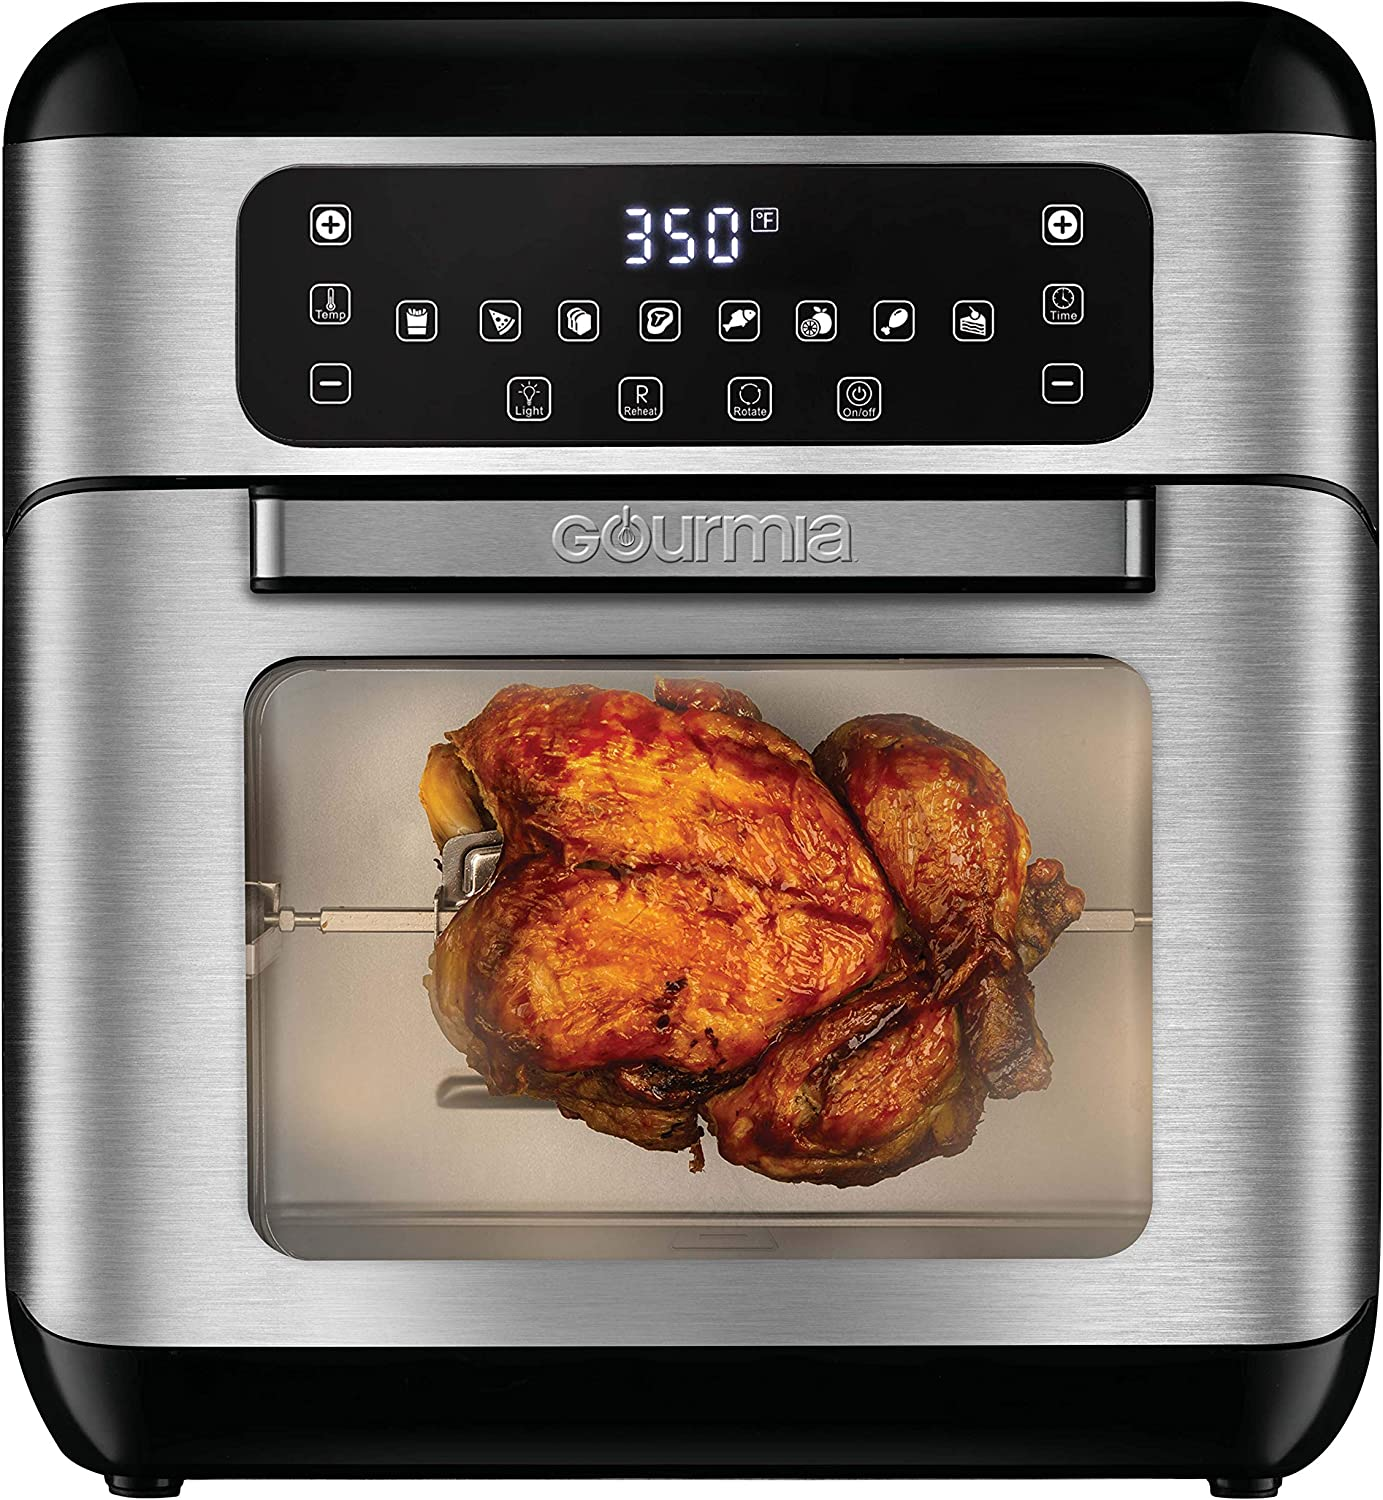 Gourmia GAF688 7-Qt All-in-One Digital Stainless Steel Air Fryer Oven with Dehydrator & Rotisserie